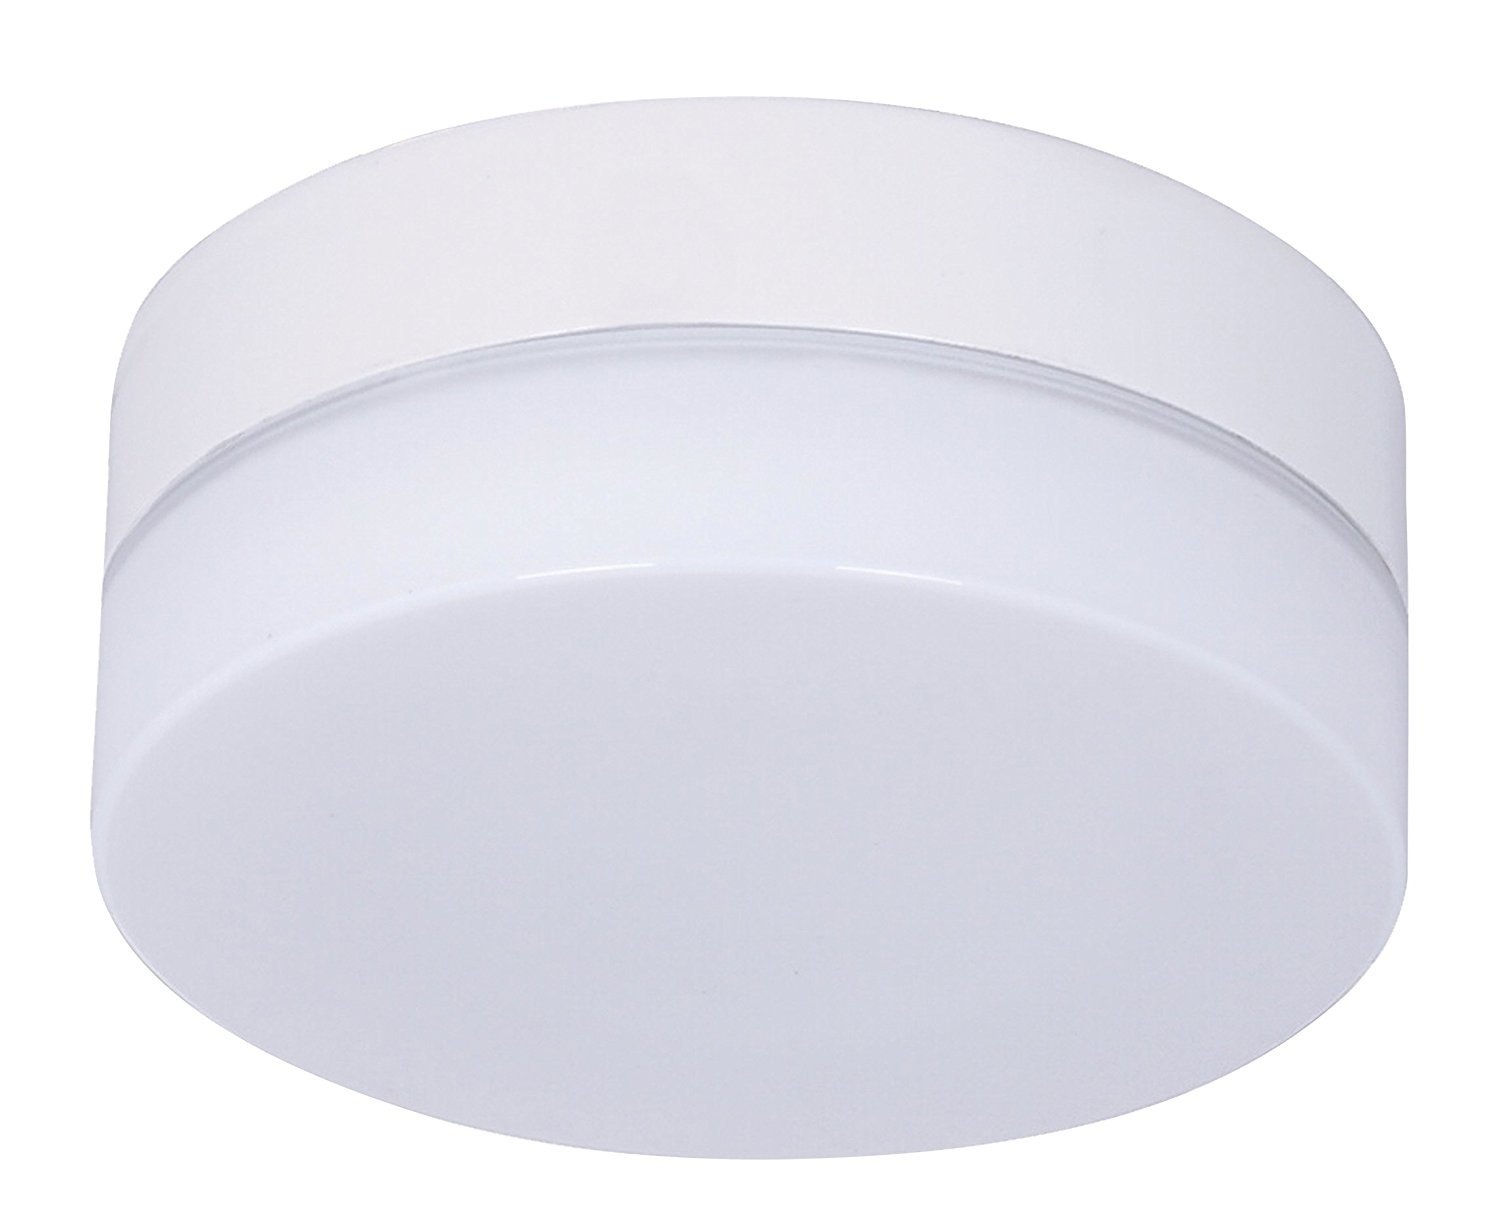 Lucci Air 21024901 Climate Glass Fan Light GX53, White by Beacon Lighting